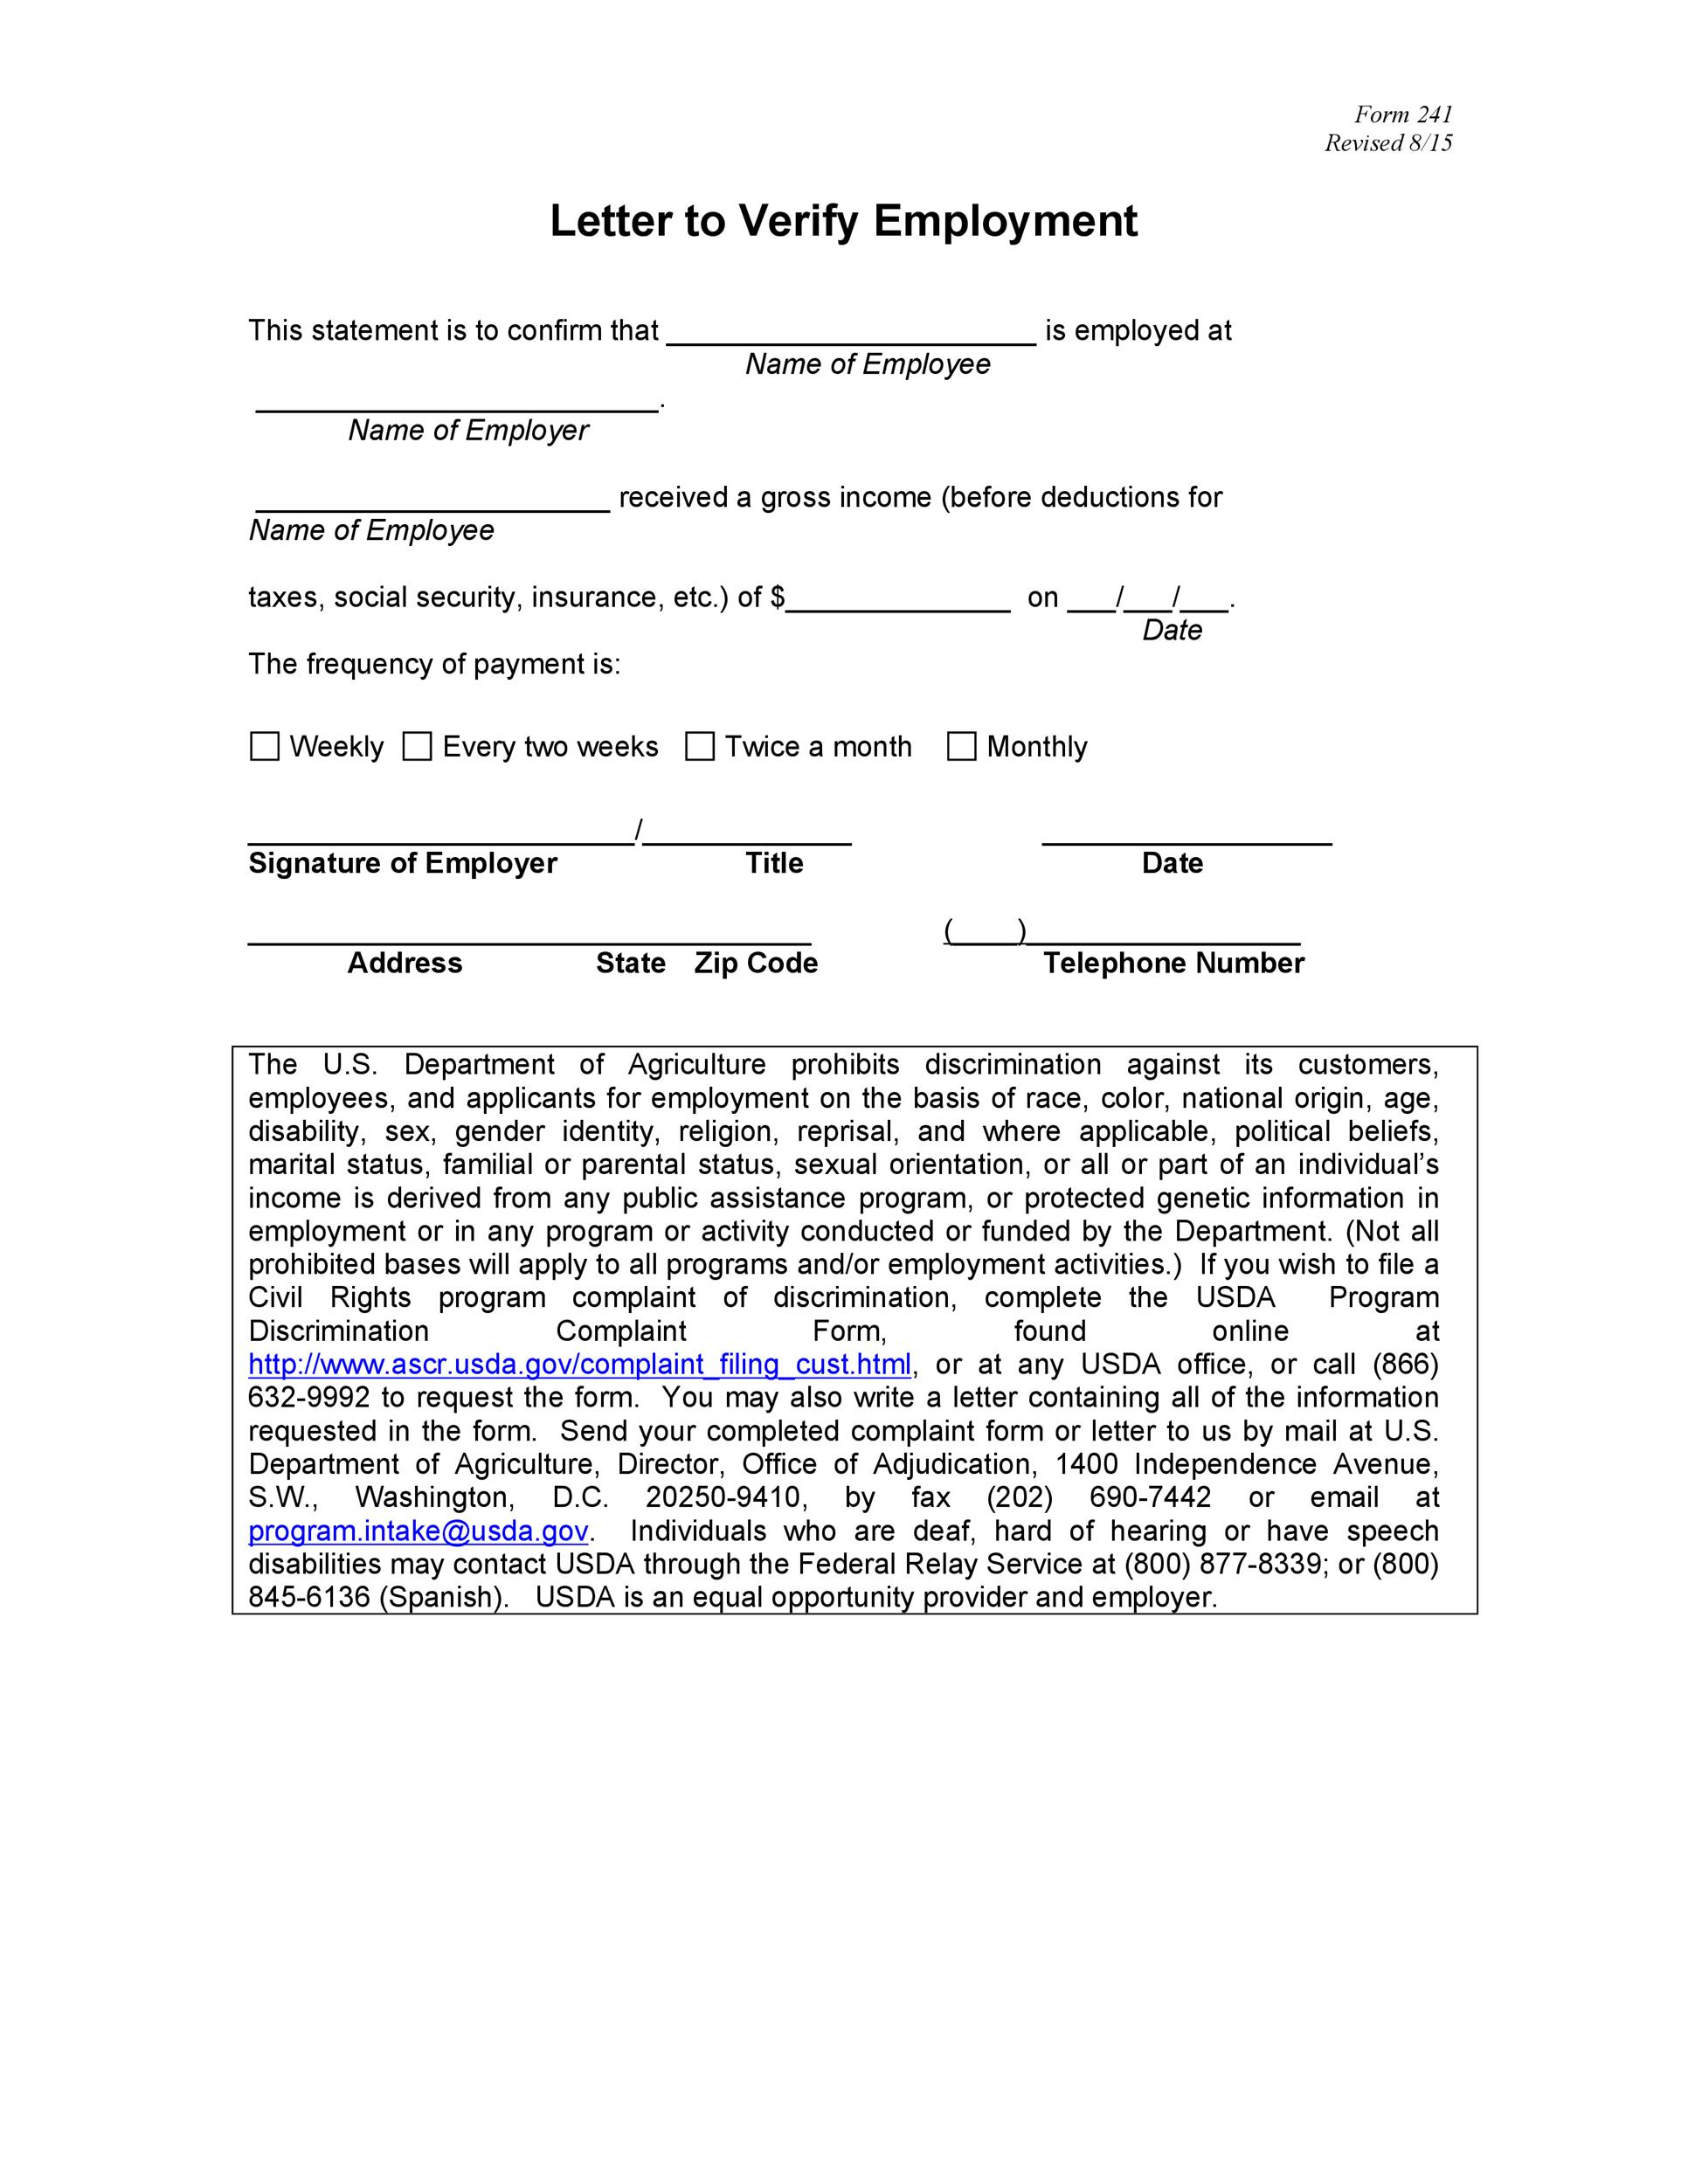 40 Proof of Employment Letters Verification Forms Samples – Proof of Employment Form